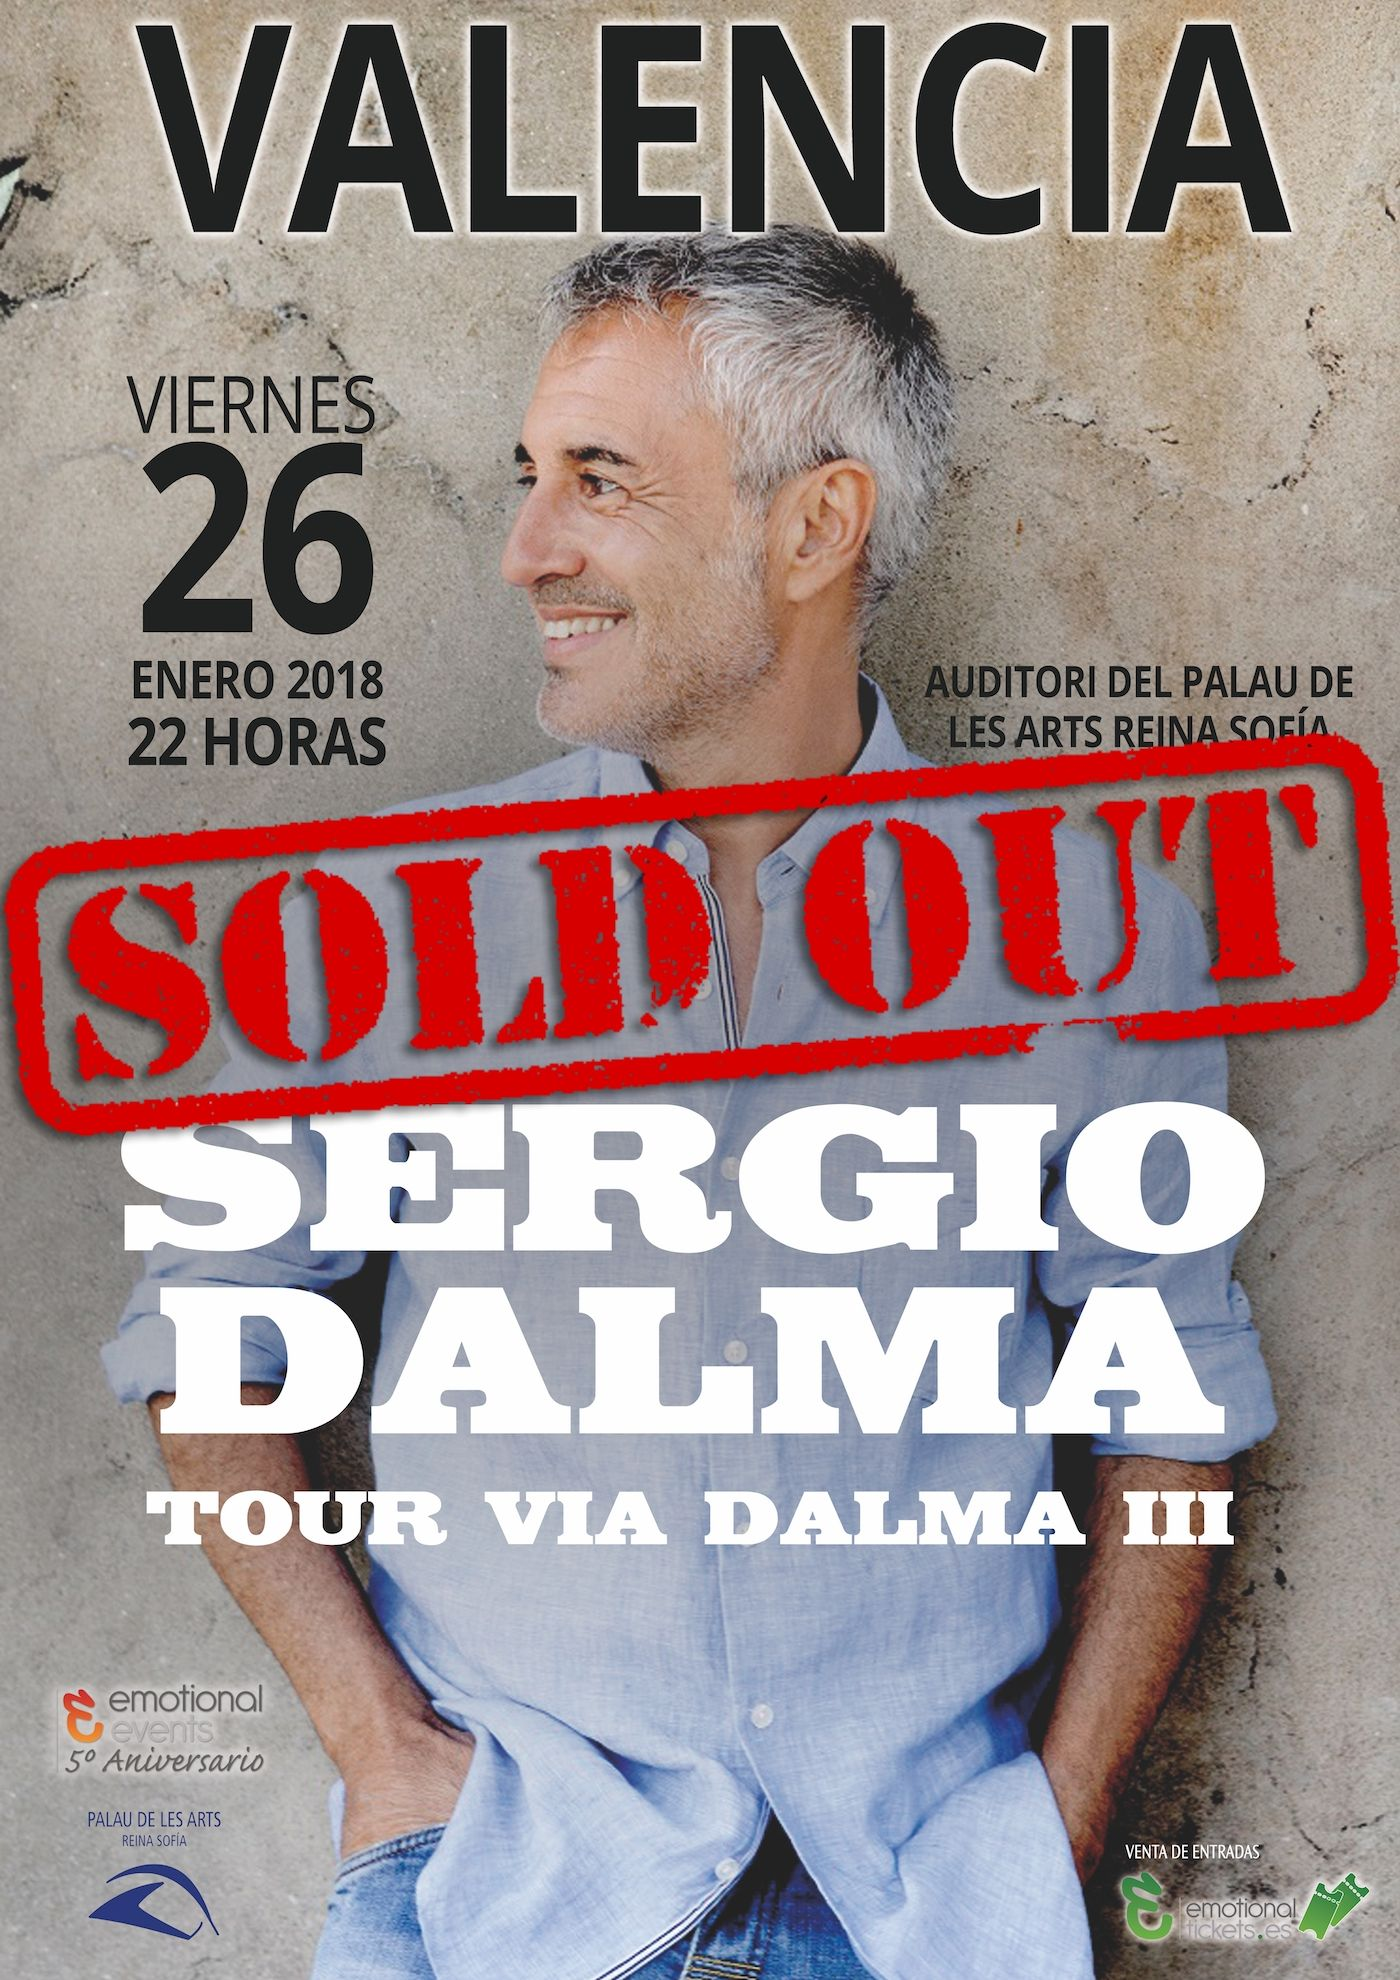 Sergio Dalma Gira Via Dalma Iii Emotional Events